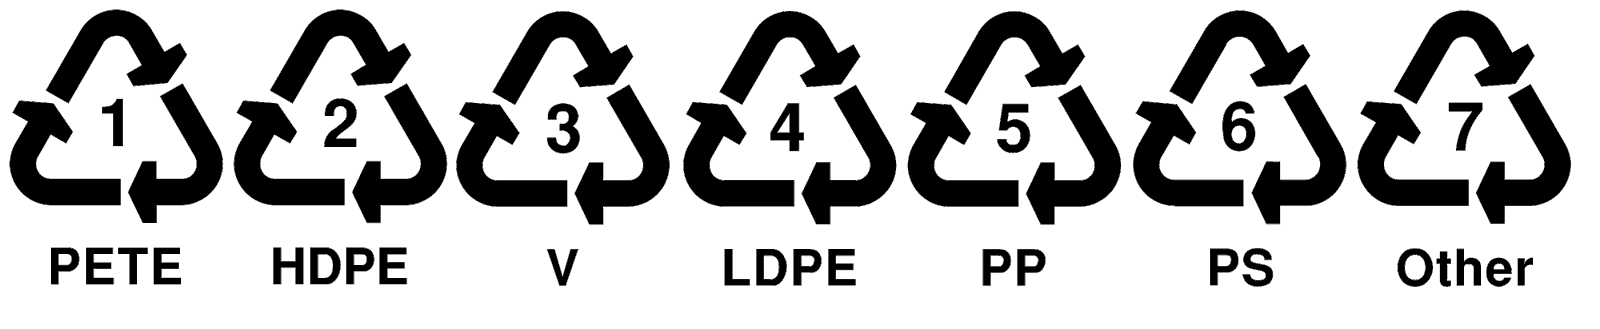 plastic recycling codes 1-7 - The Social issuz